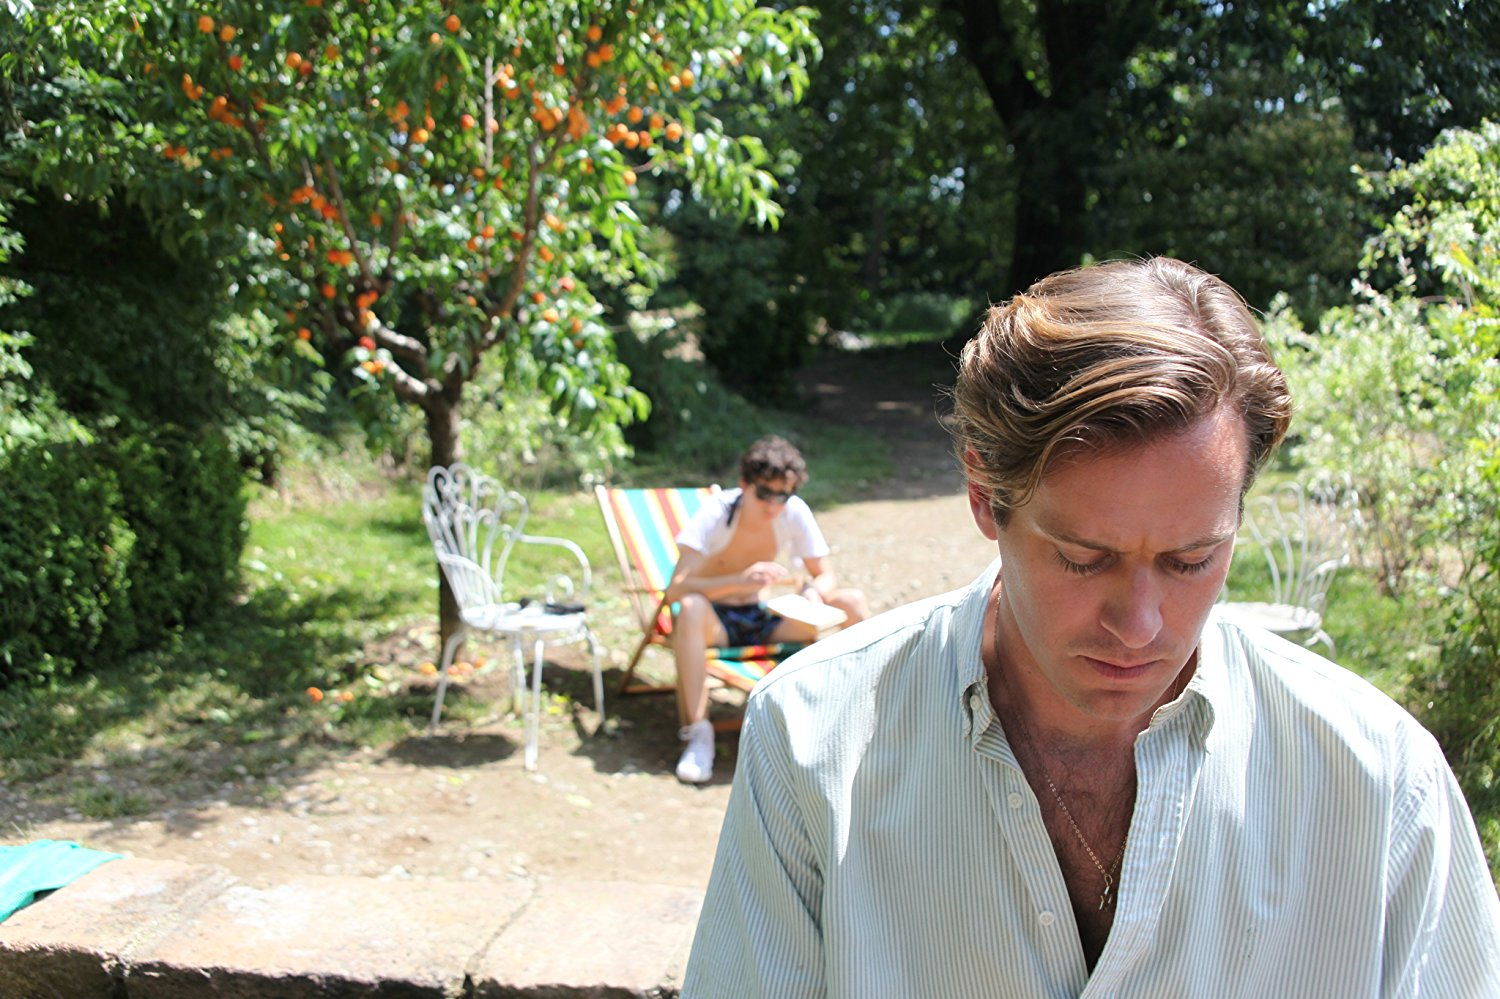 Call Me By Your Name Free Online Movies Tv Shows At Gomovies